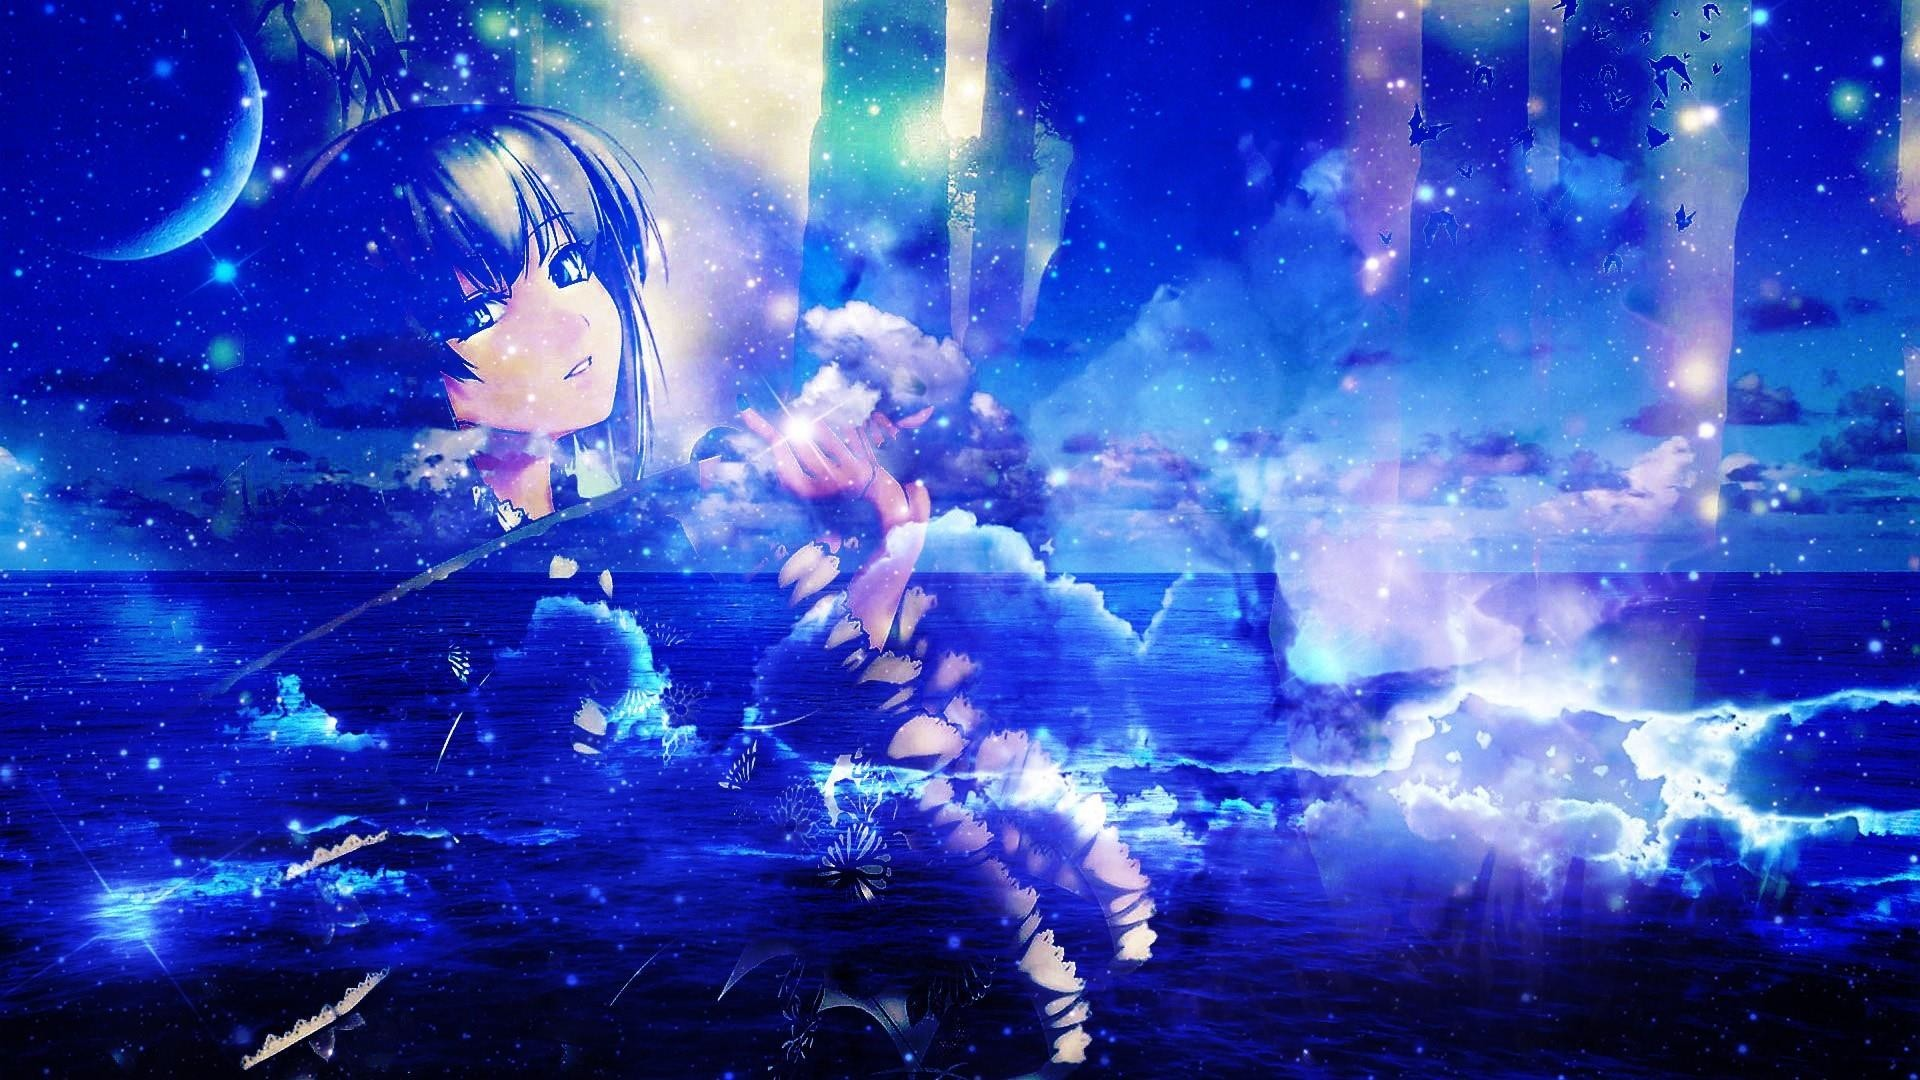 Res: 1920x1080, Res: , Best of Anime Girl Fantasy ...